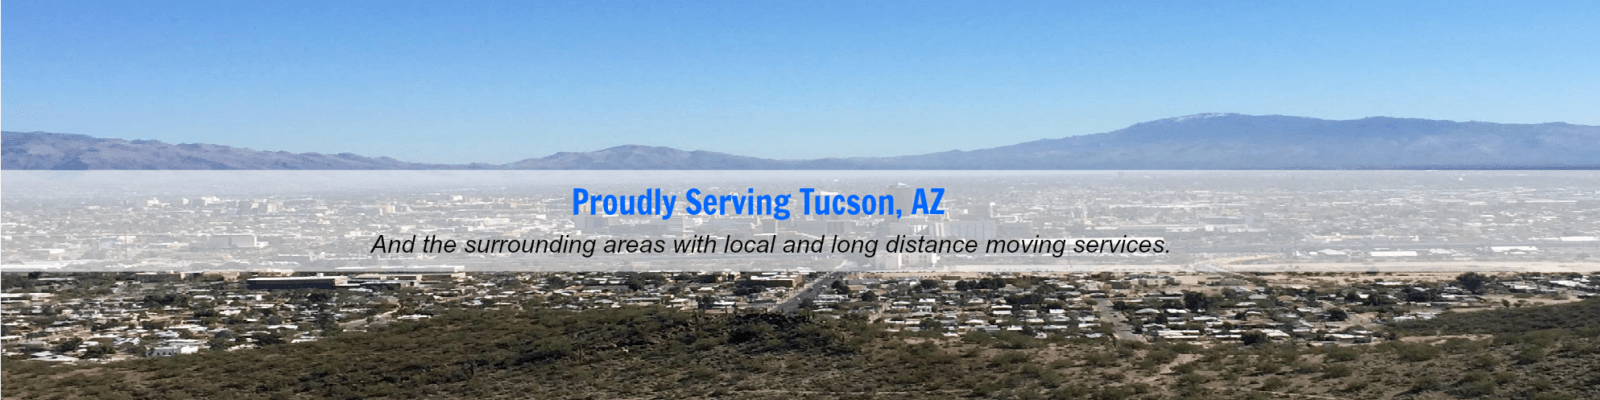 tucson-moving-services-2